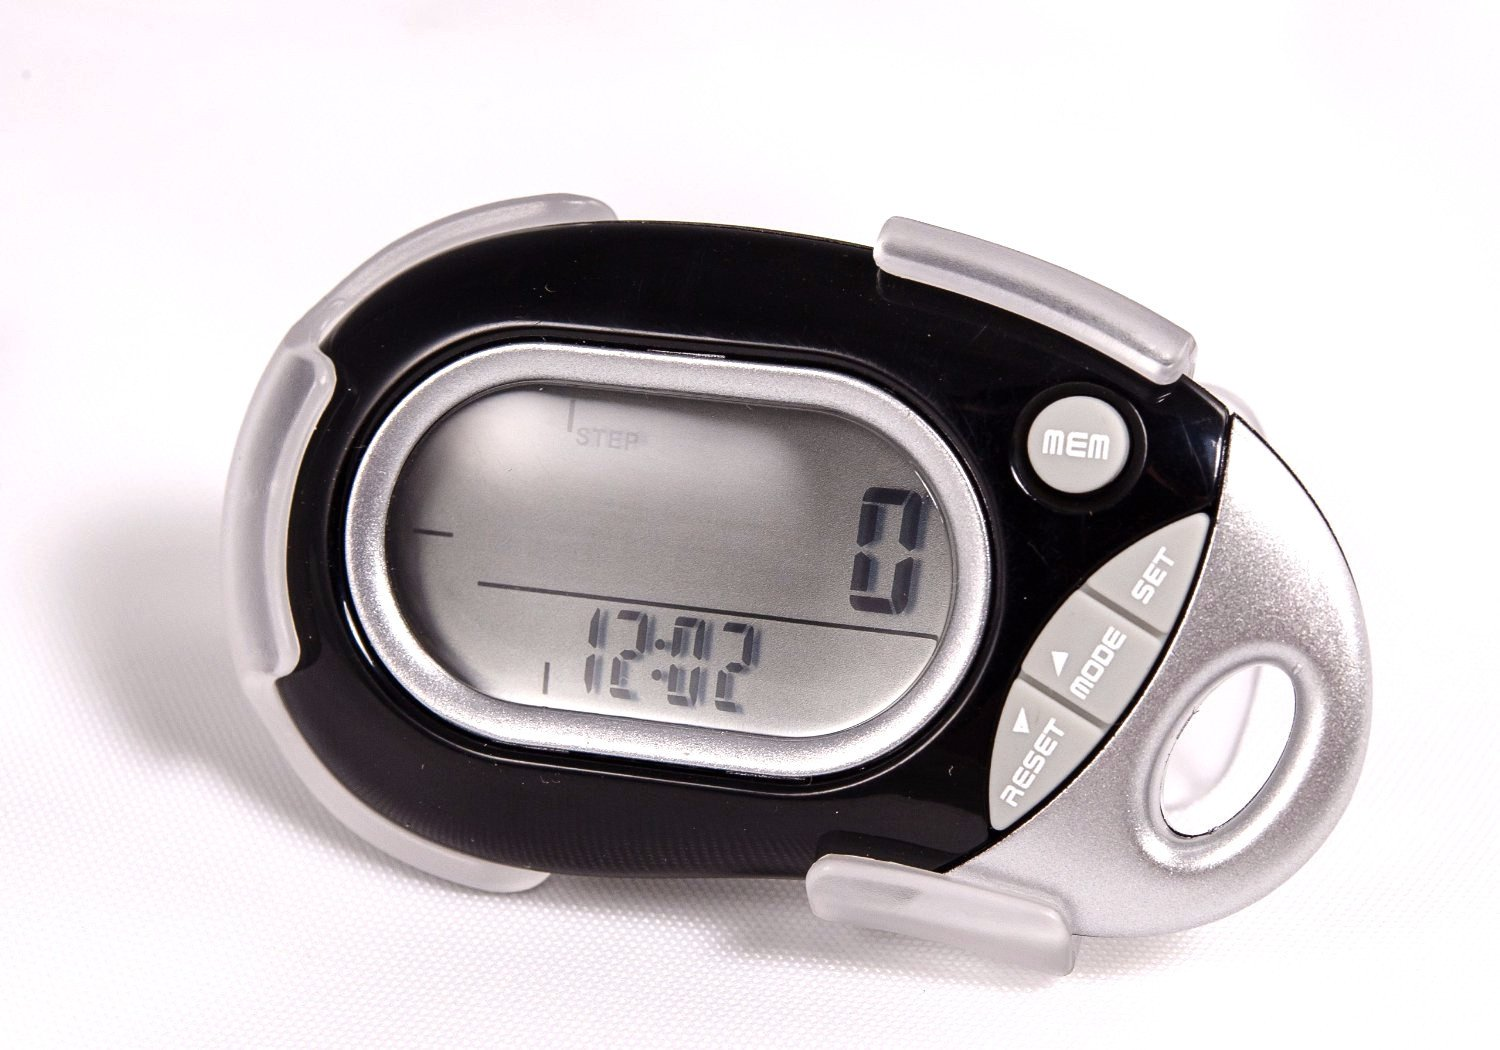 Pedusa PE-771 Tri-Axis Multi-Function Pocket Pedometer - Black With Holster/Belt Clip by HRM